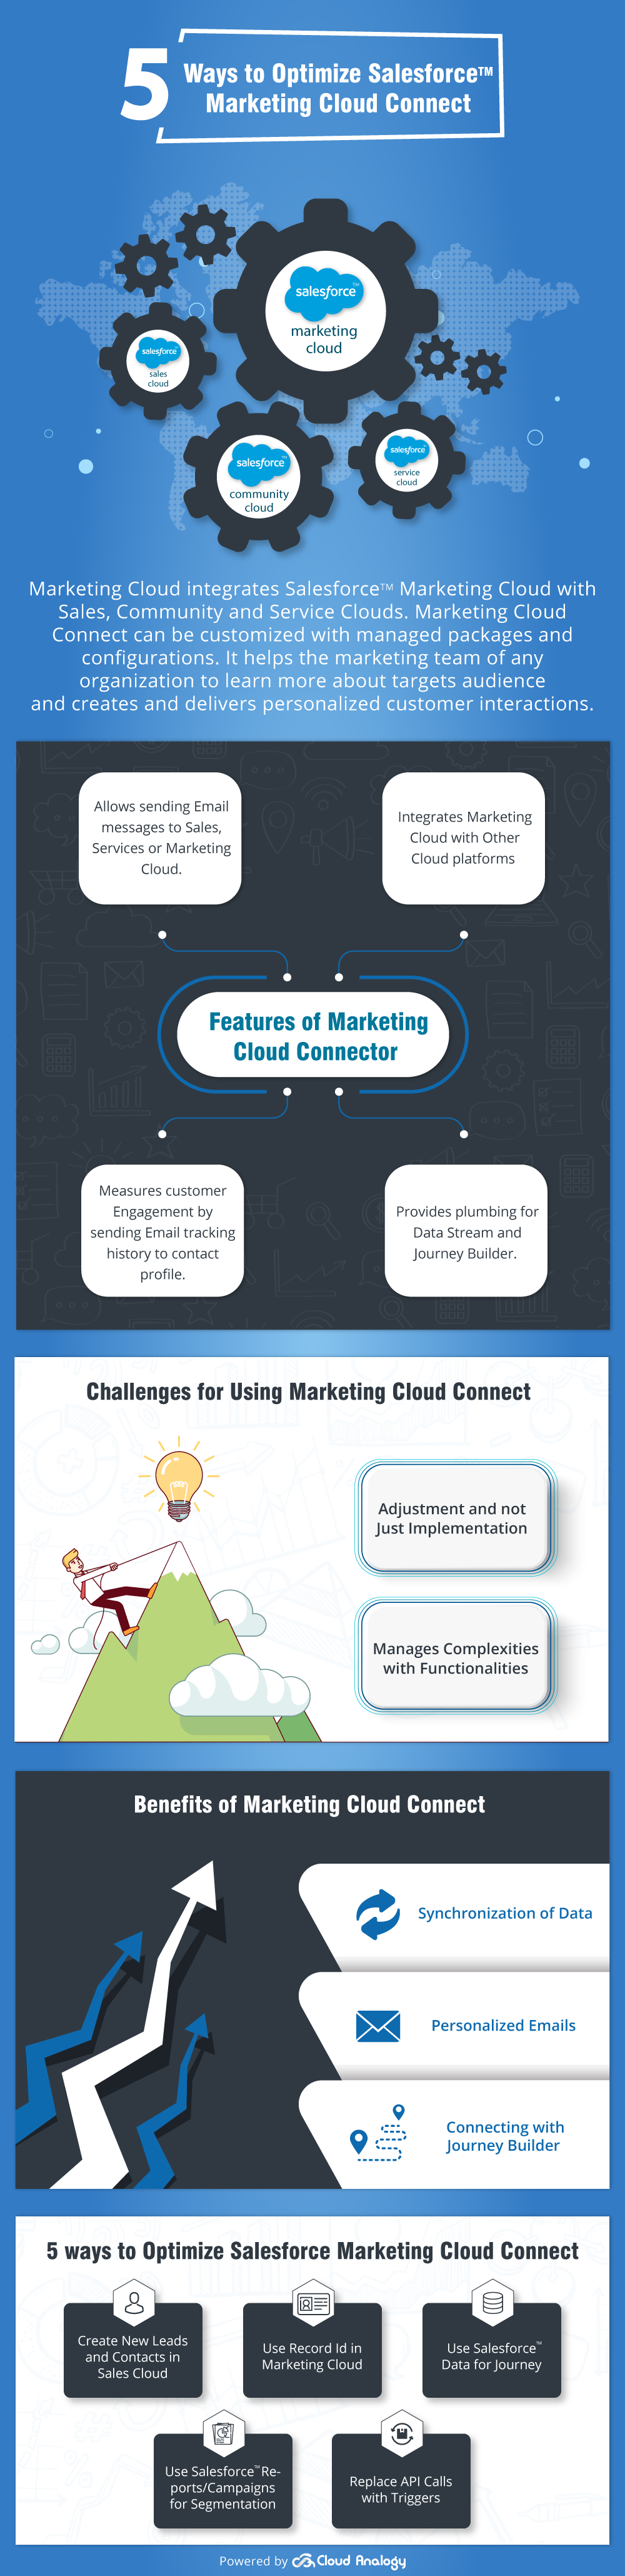 5-Ways-to-Optimize-Salesforce-Marketing-Cloud-Connect-infographics-final